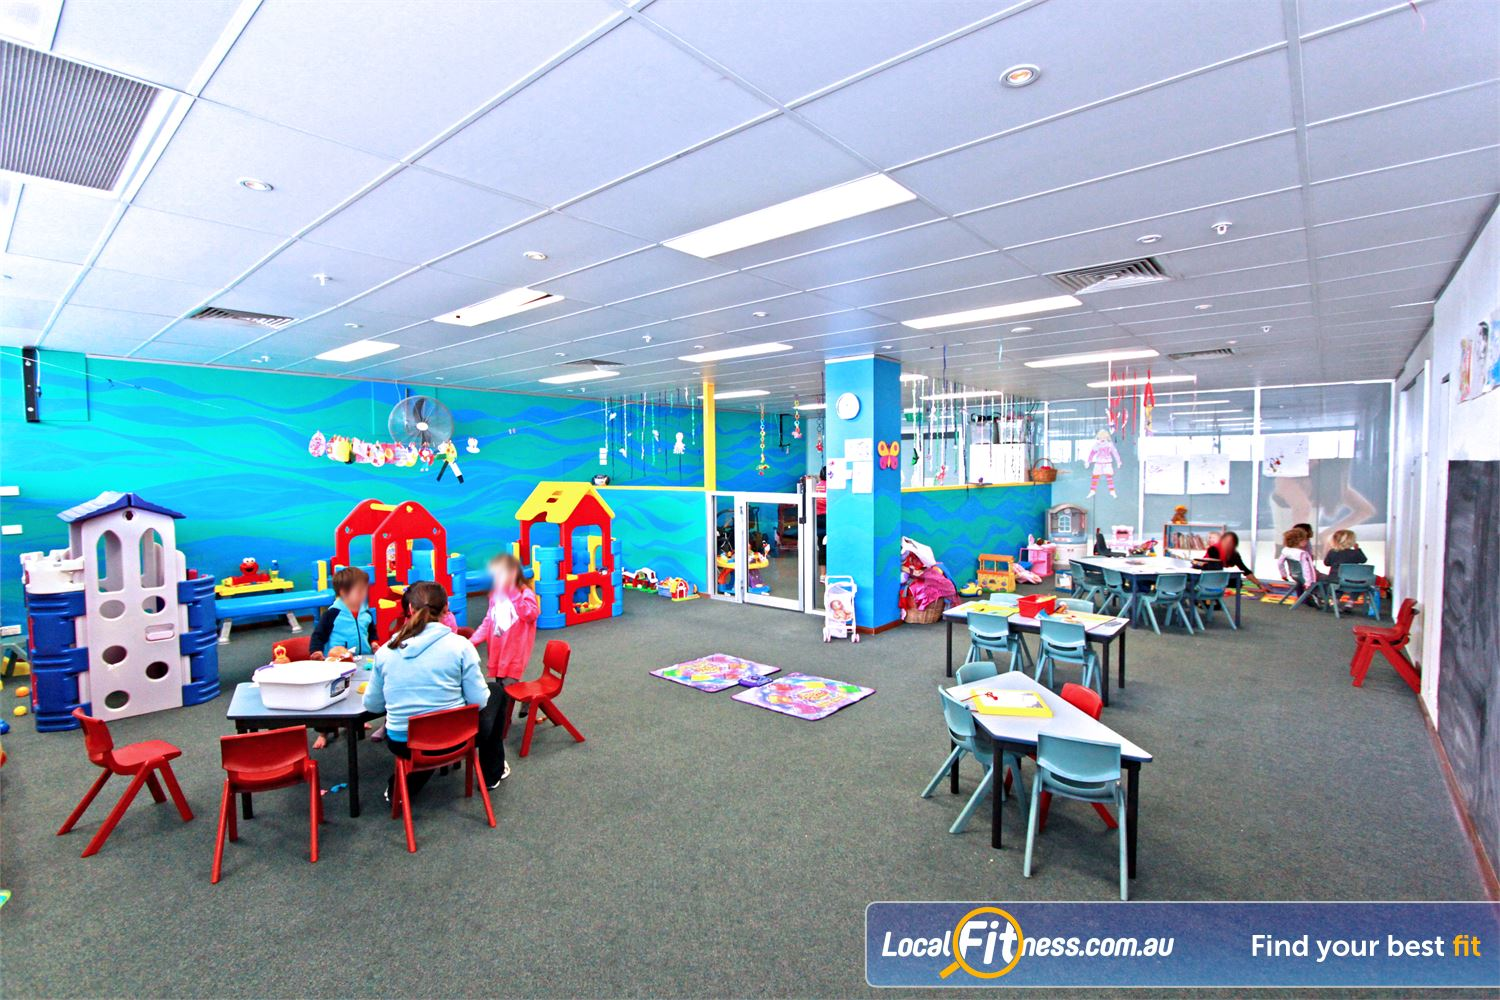 Fernwood Fitness Near Amaroo Conveniently located on-site child-care at Fernwood Gungahlin gym.